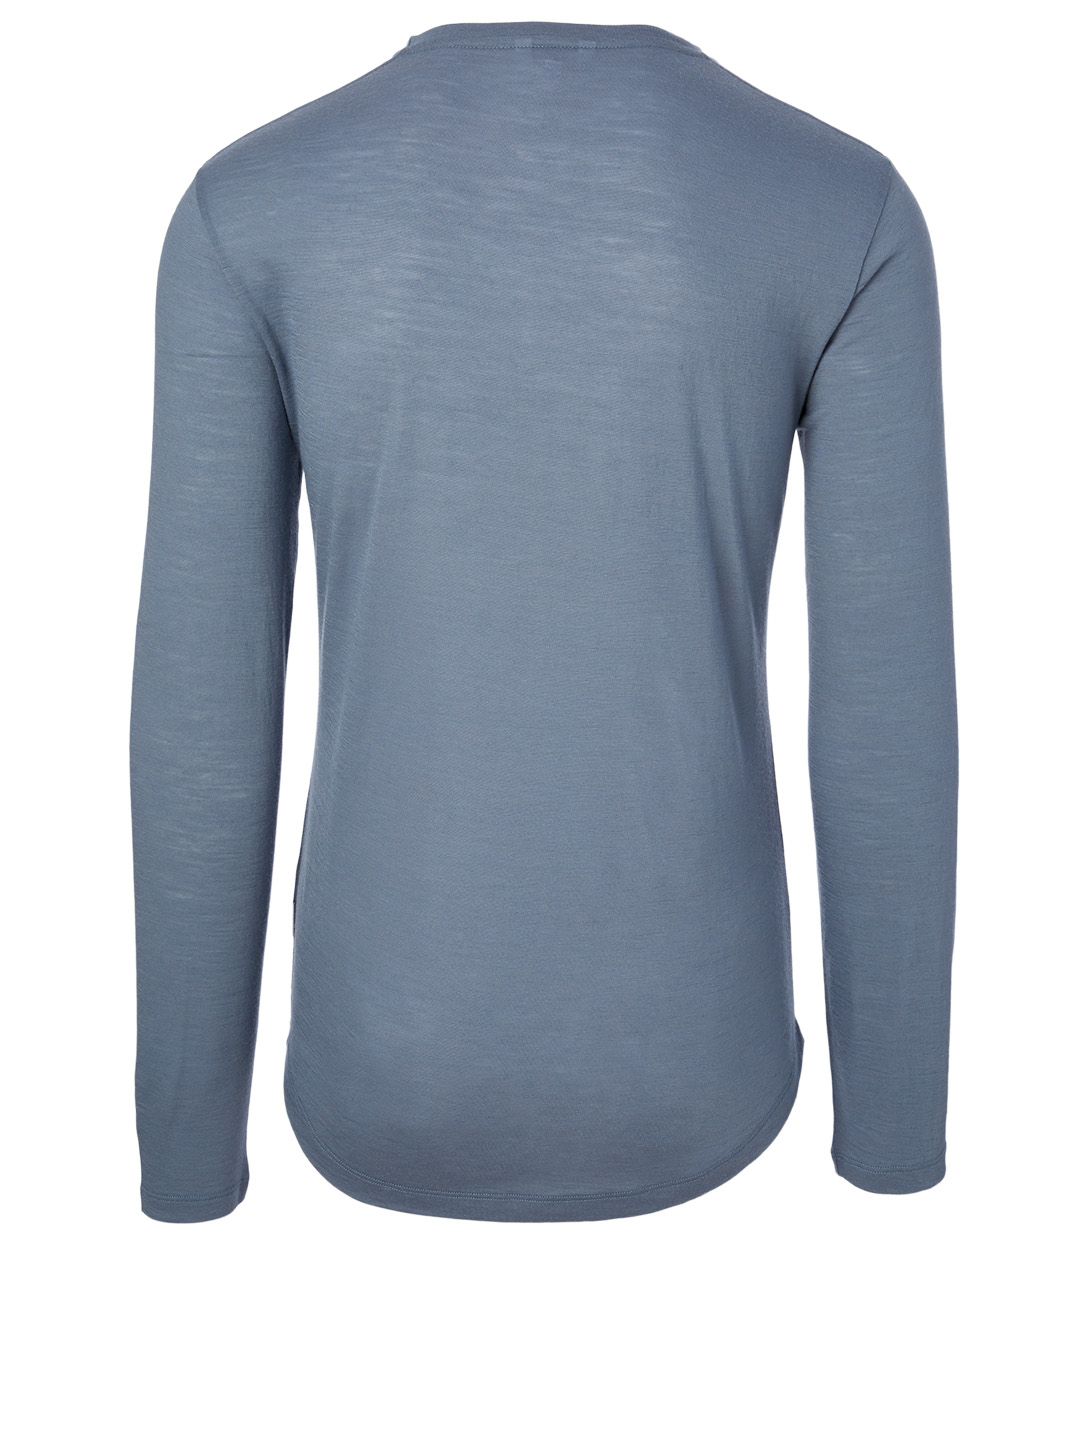 ORLEBAR BROWN OB-T Merino Long-Sleeve T-Shirt Men's Grey